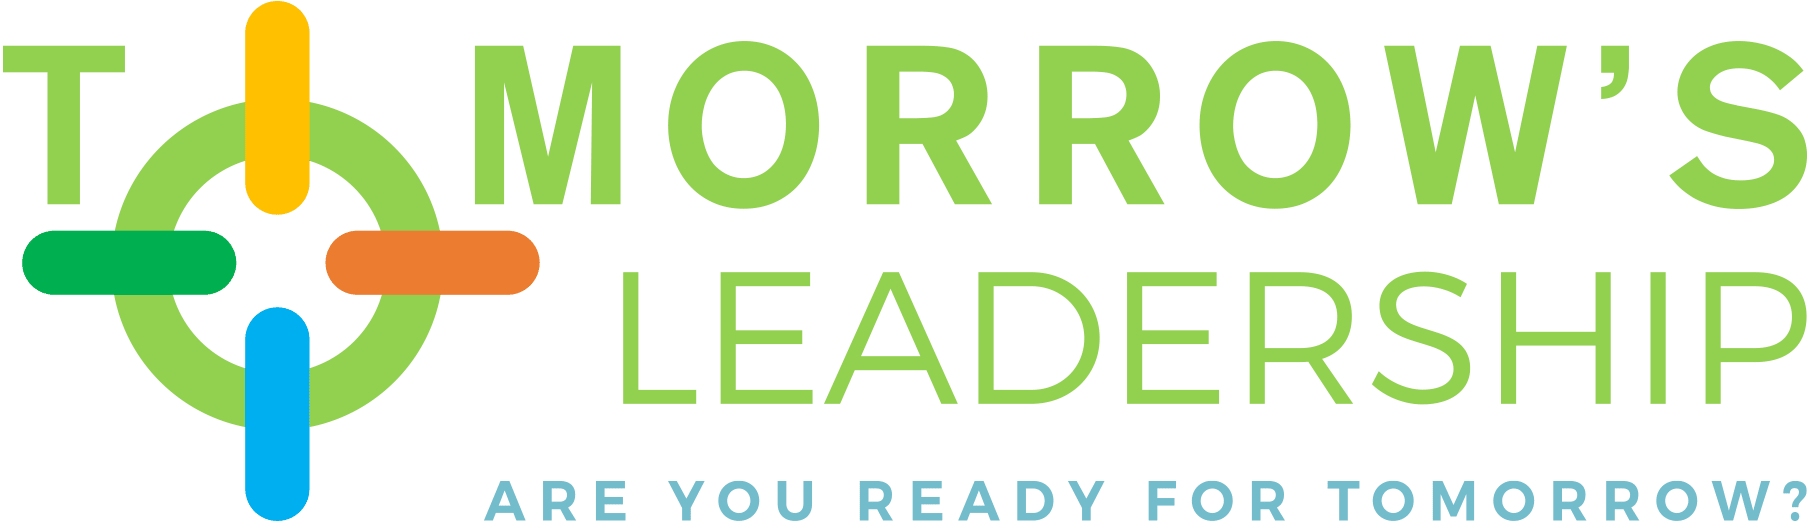 website gemaakt voor tomorrows-leadership